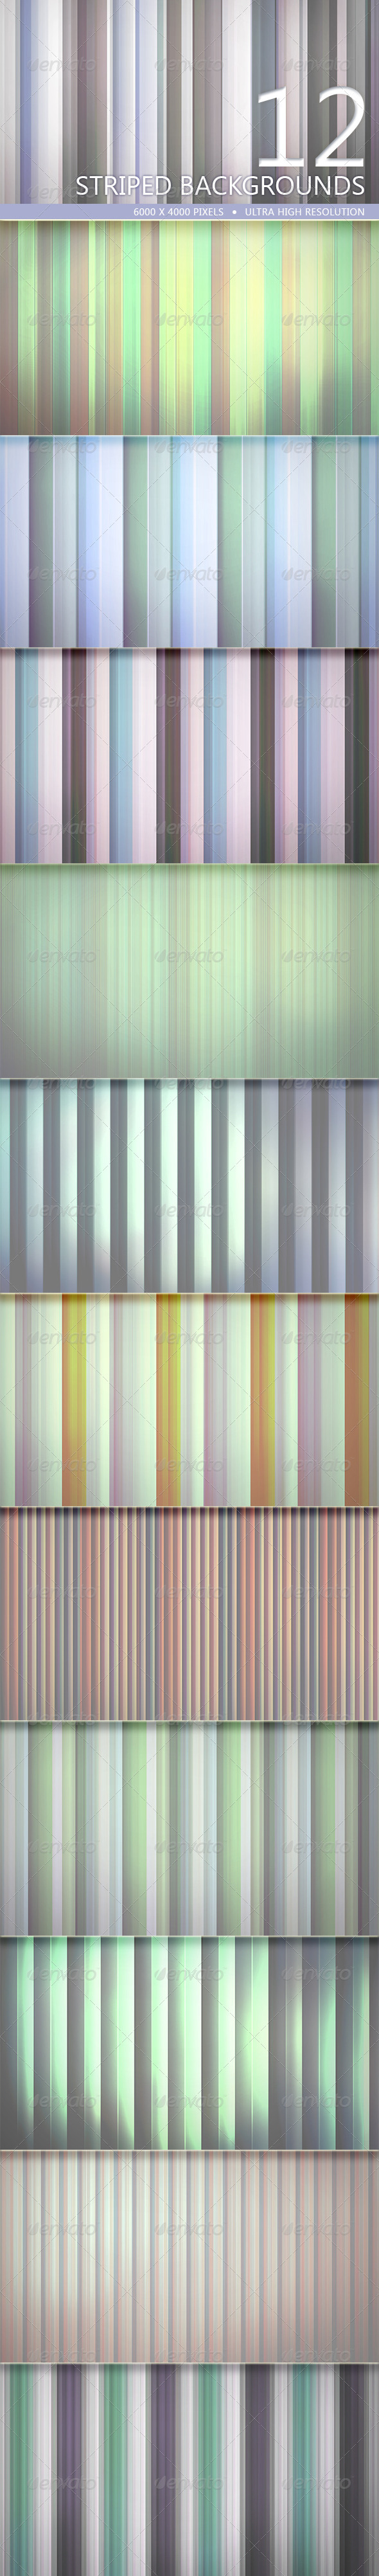 GraphicRiver Striped Backgrounds Volume 2 5212162